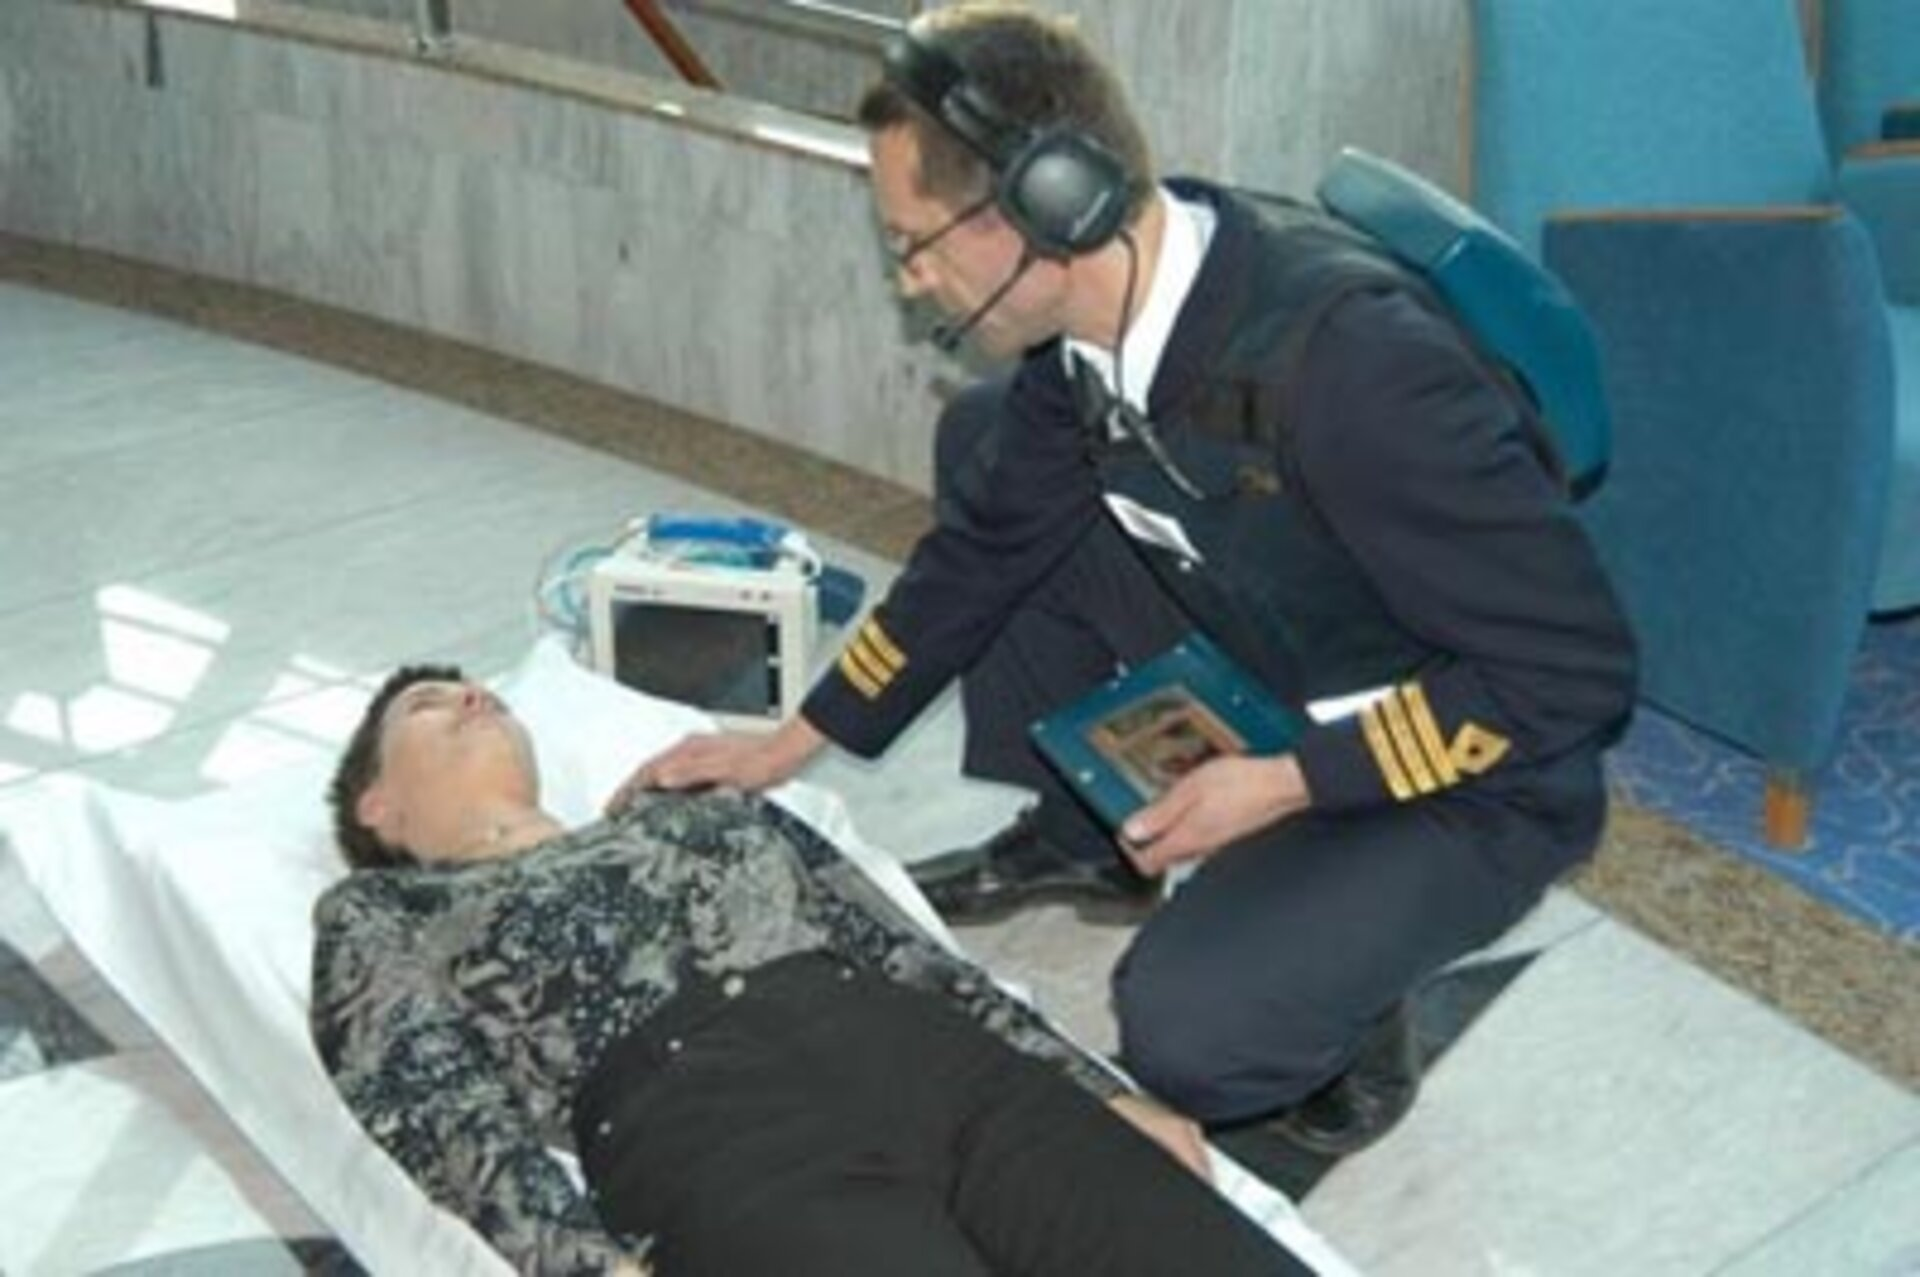 Medical assistant takes instruction from remote doctor